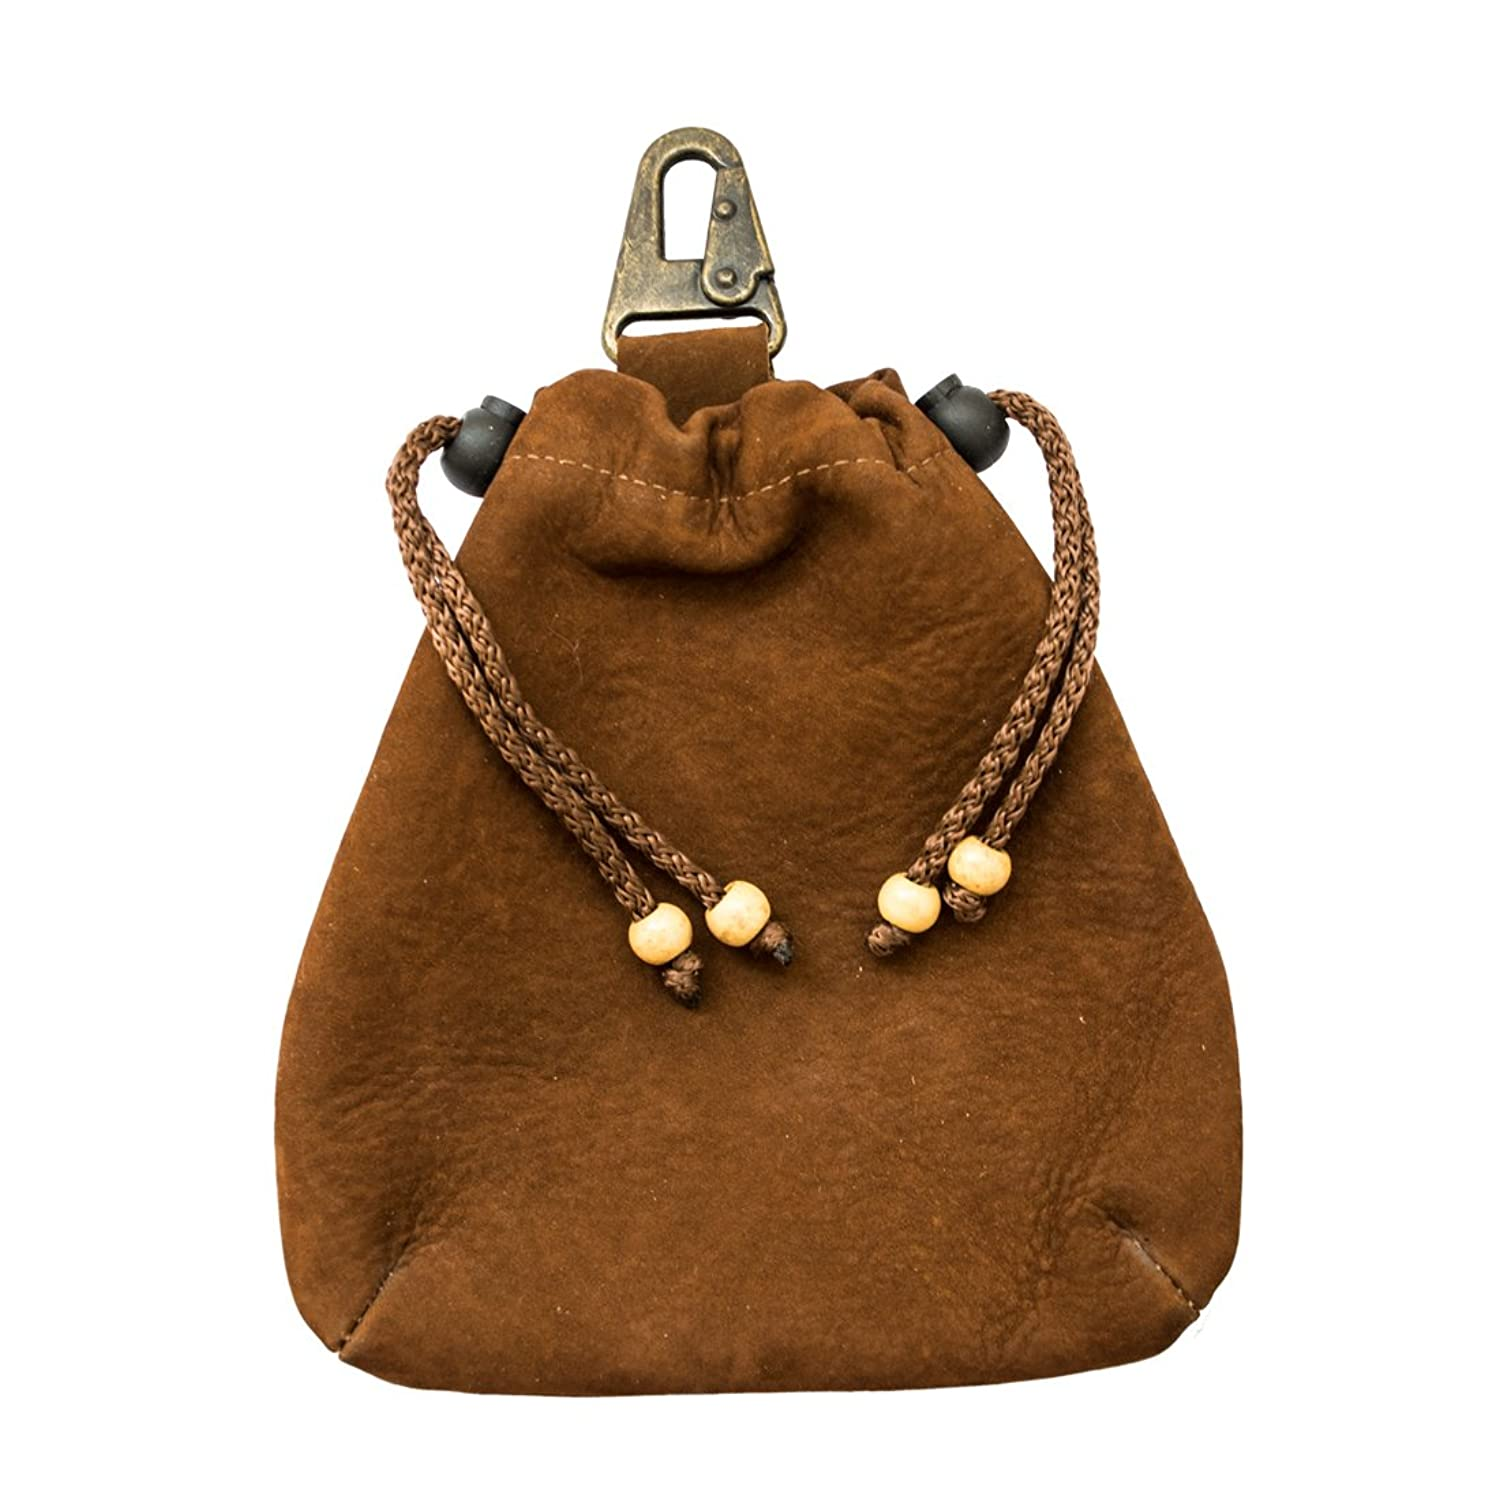 Highest-Quality Handmade Women'ss Medieval Style Suede Leather Drawstring Pouch